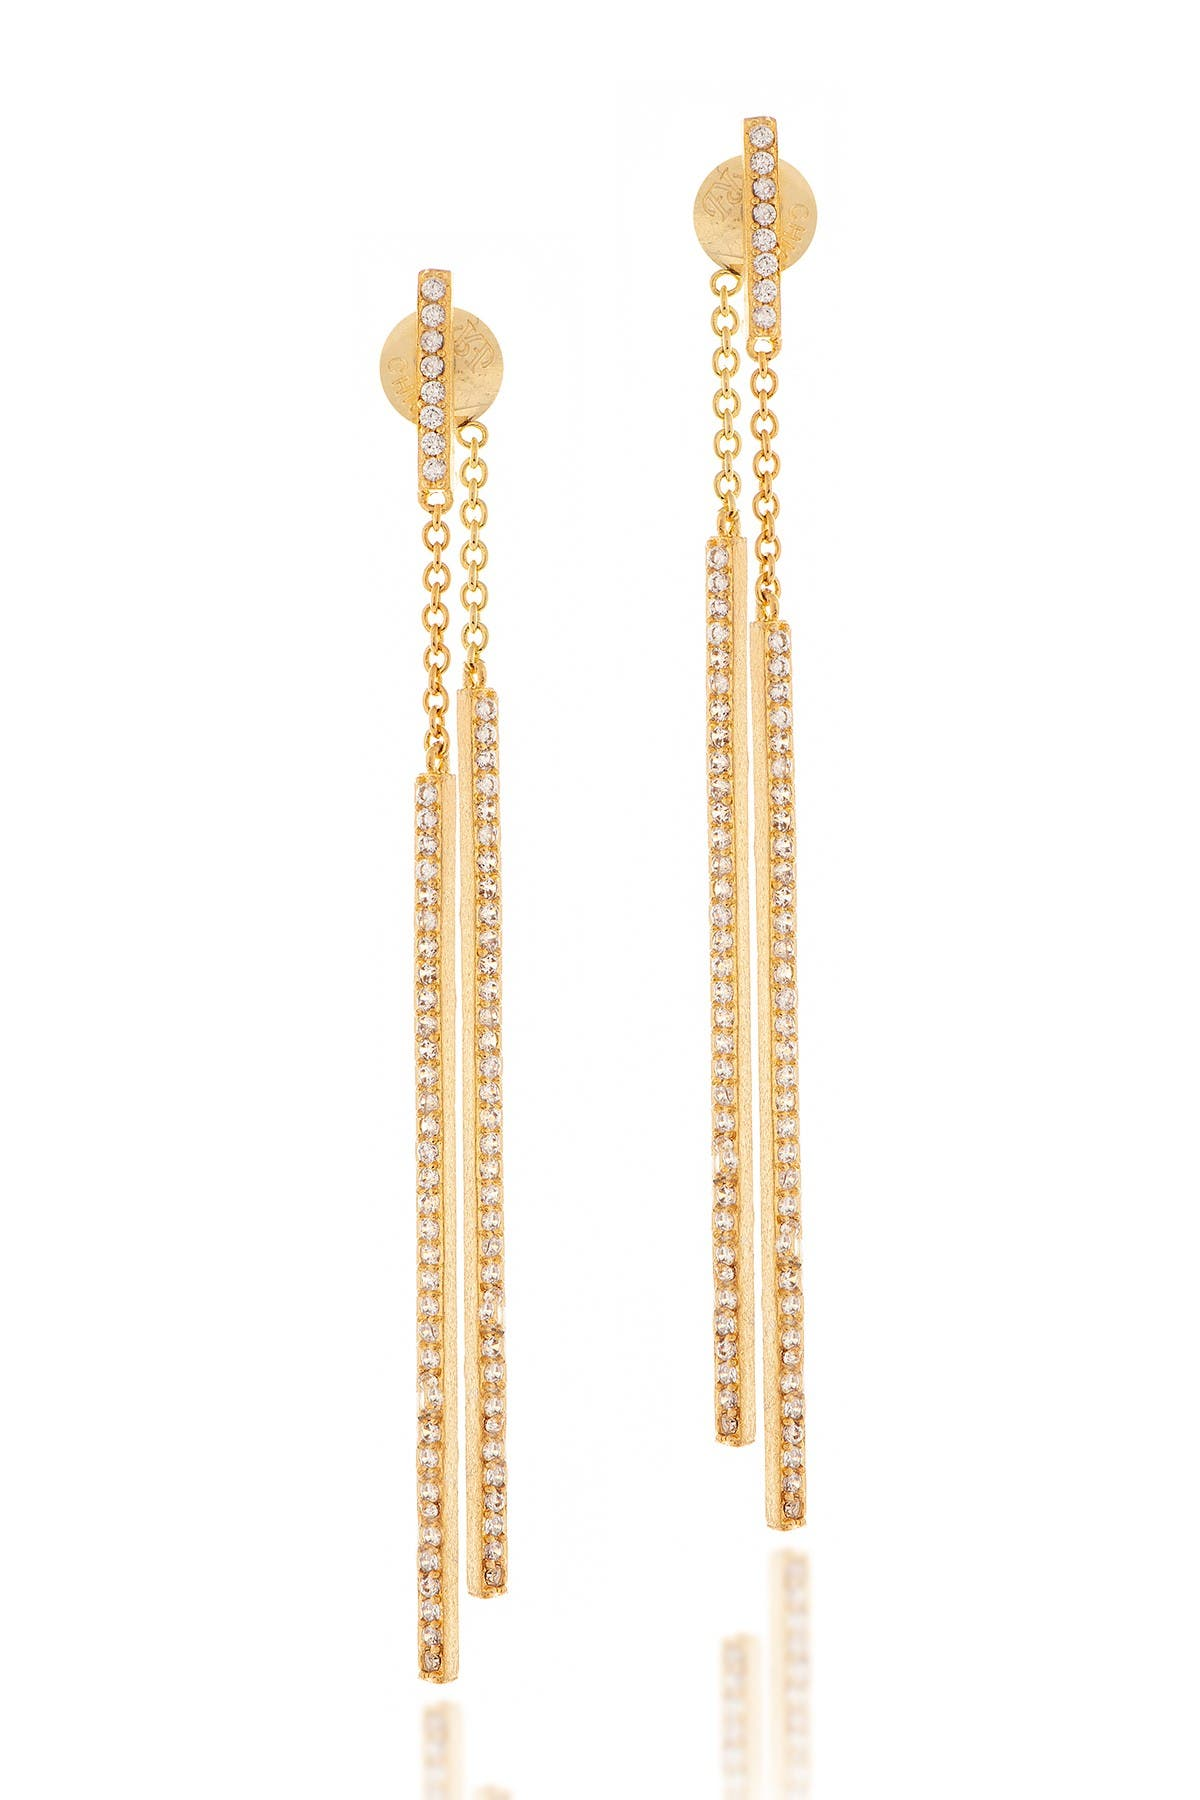 Image of Rivka Friedman Front/Back CZ Elongated Stick Earrings